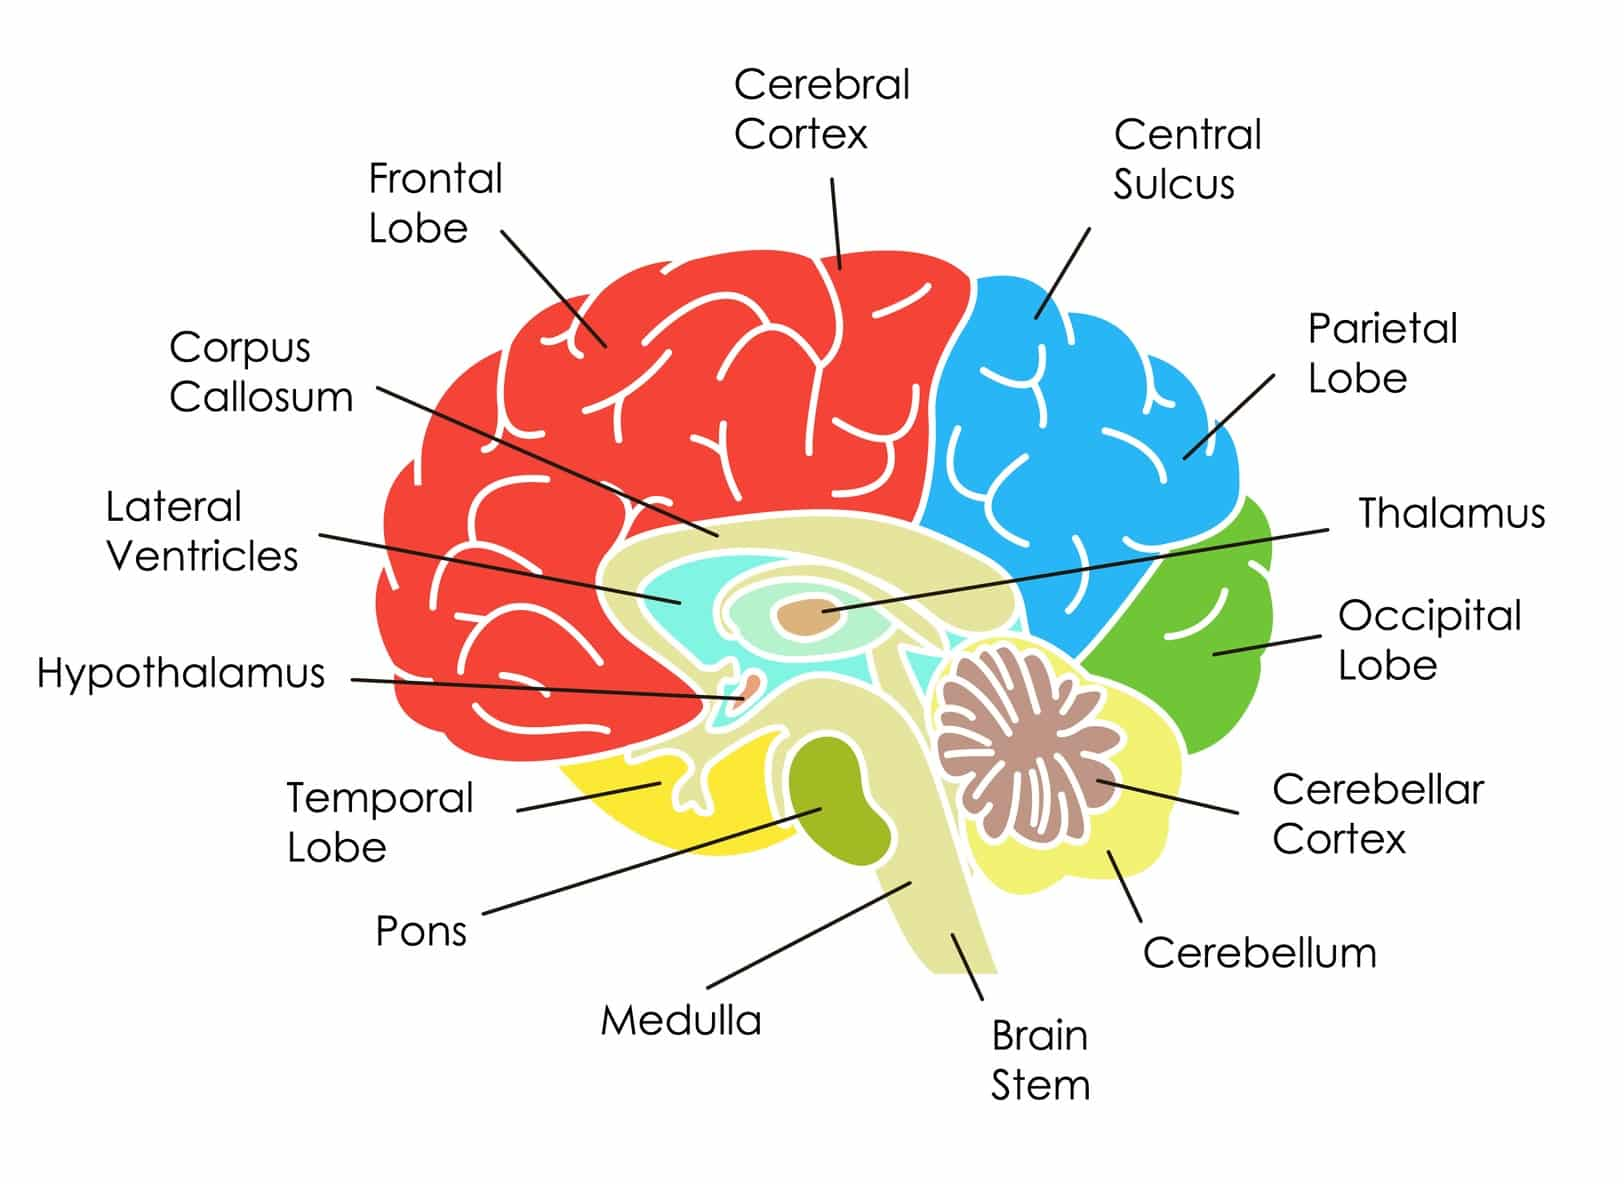 Parts Of The Human Brain And Their Functions - WISURU